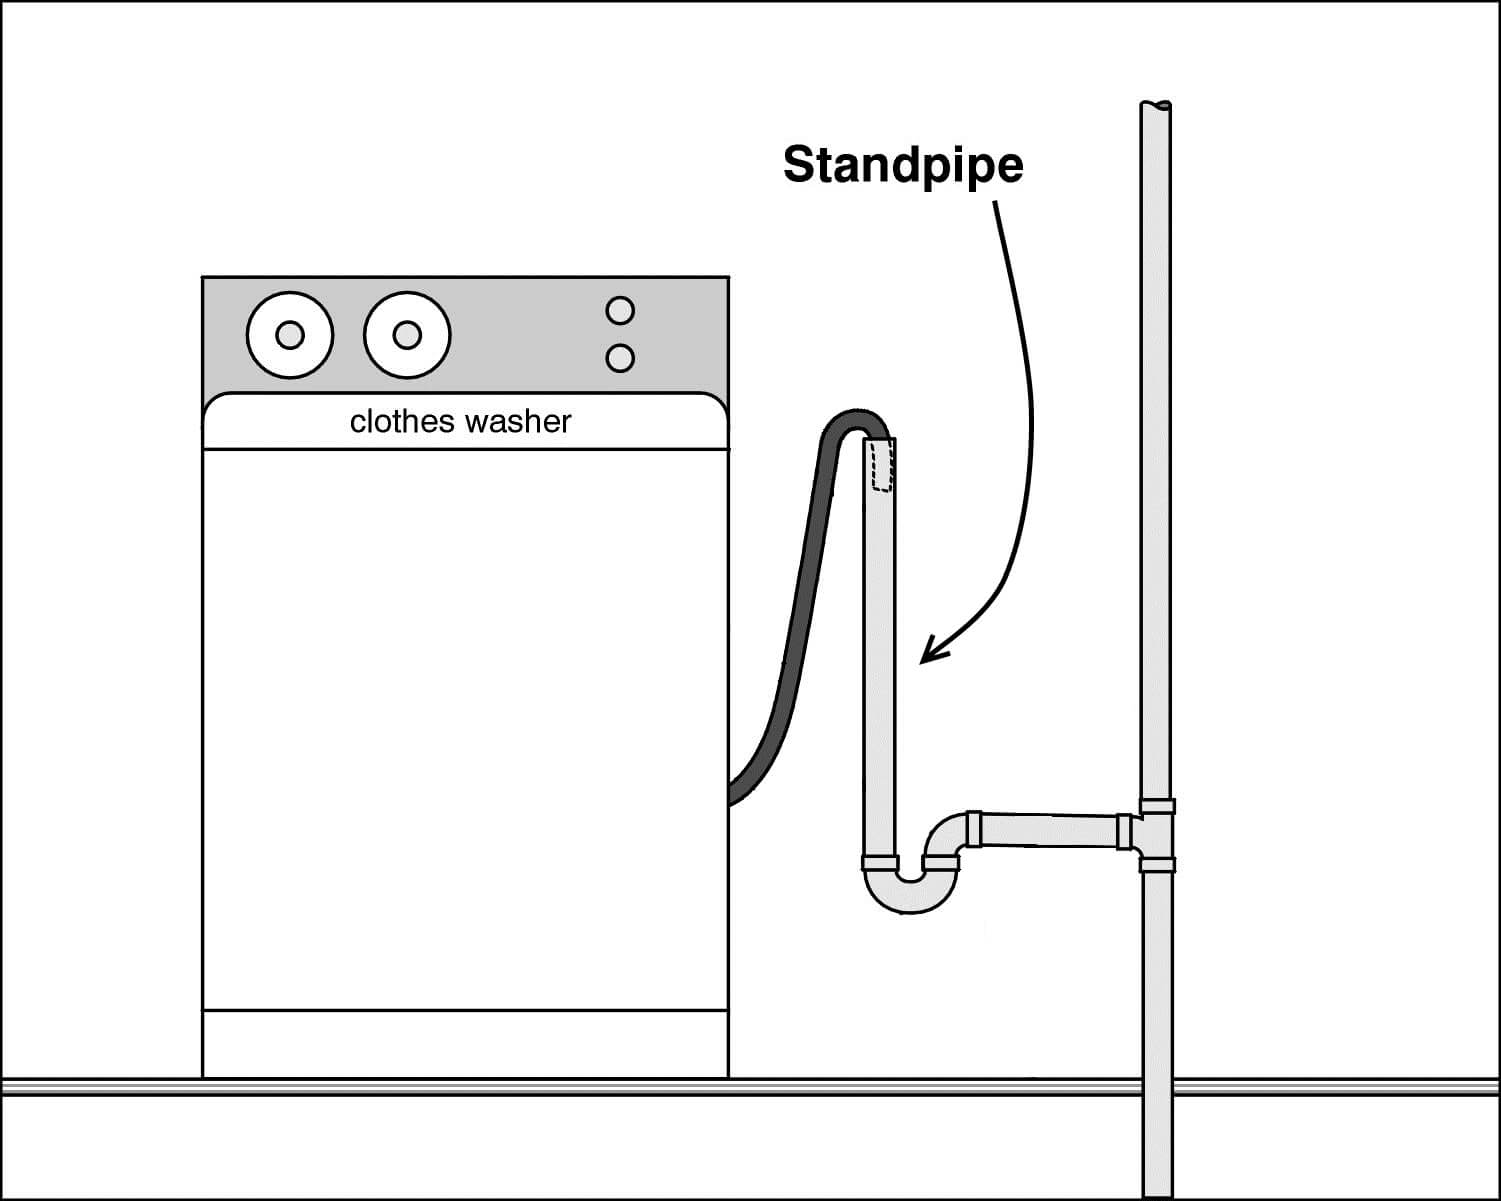 Stinky Laundry Room Bathroom Check Your Traps Wiring A Washing Machine Motor Topic Standpipe Diagram